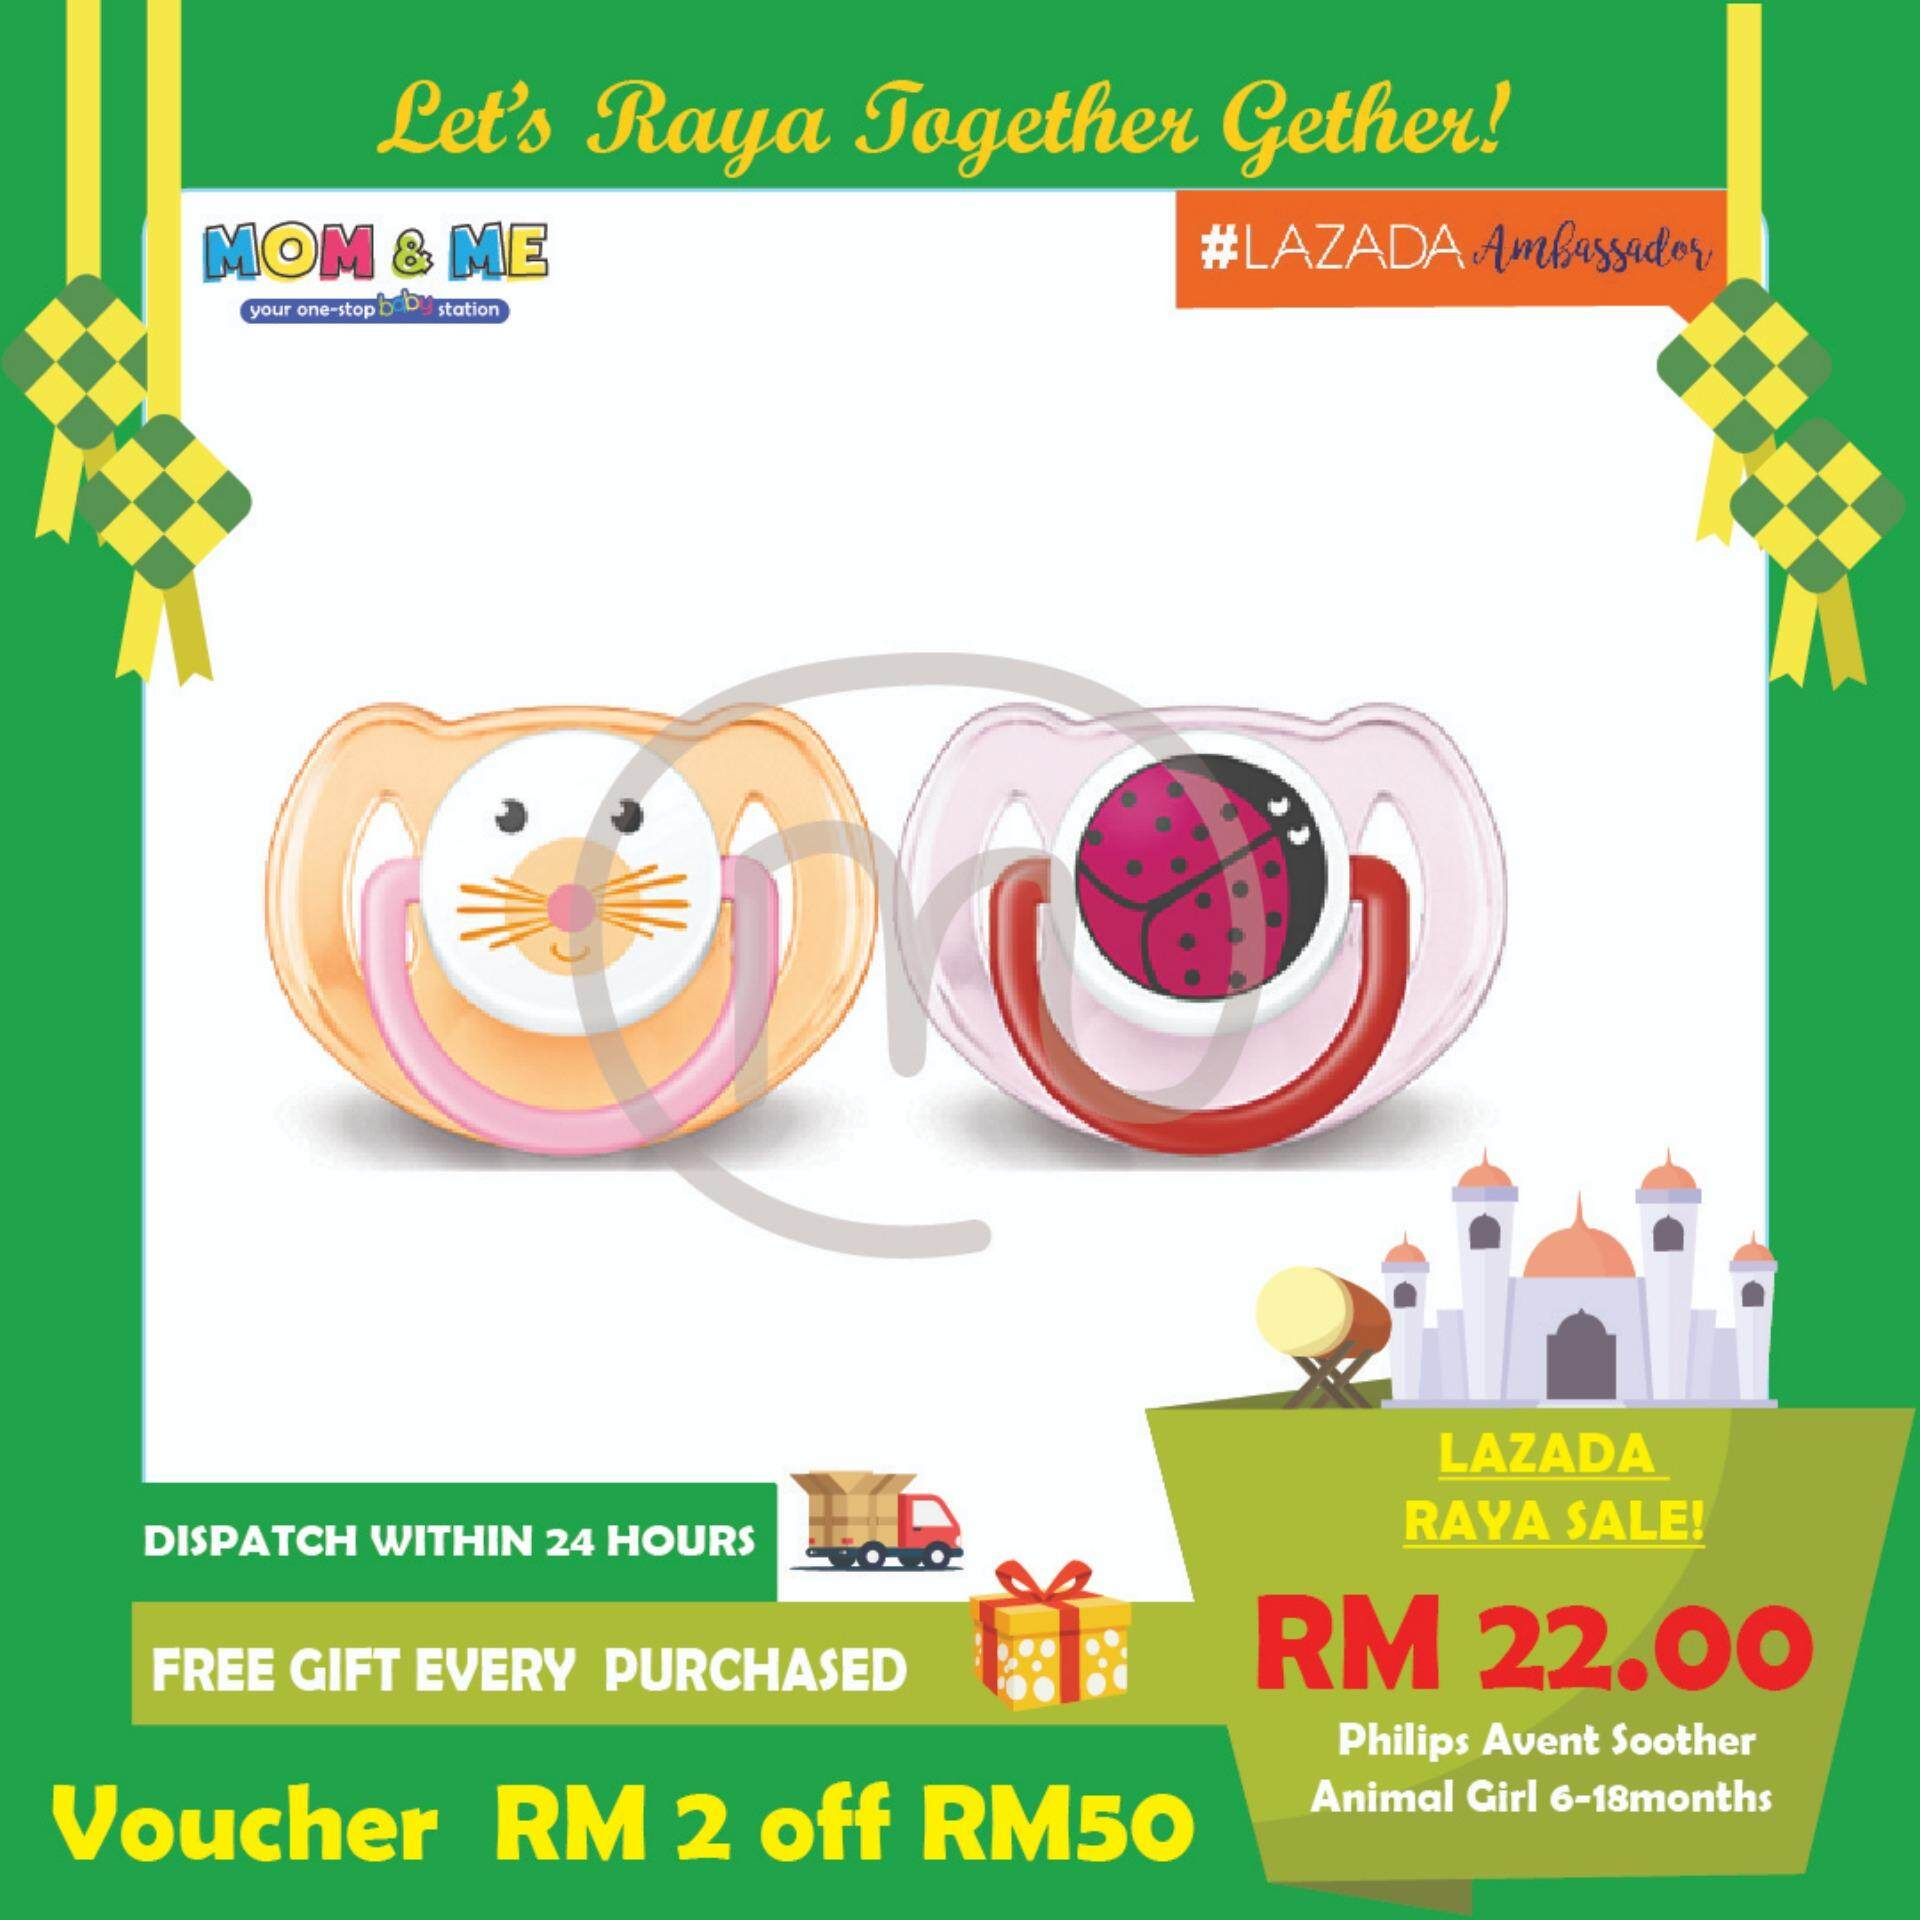 Philips Avent Soother Animal Range 6-18 Month Twin Pack Pink By Mom & Me.